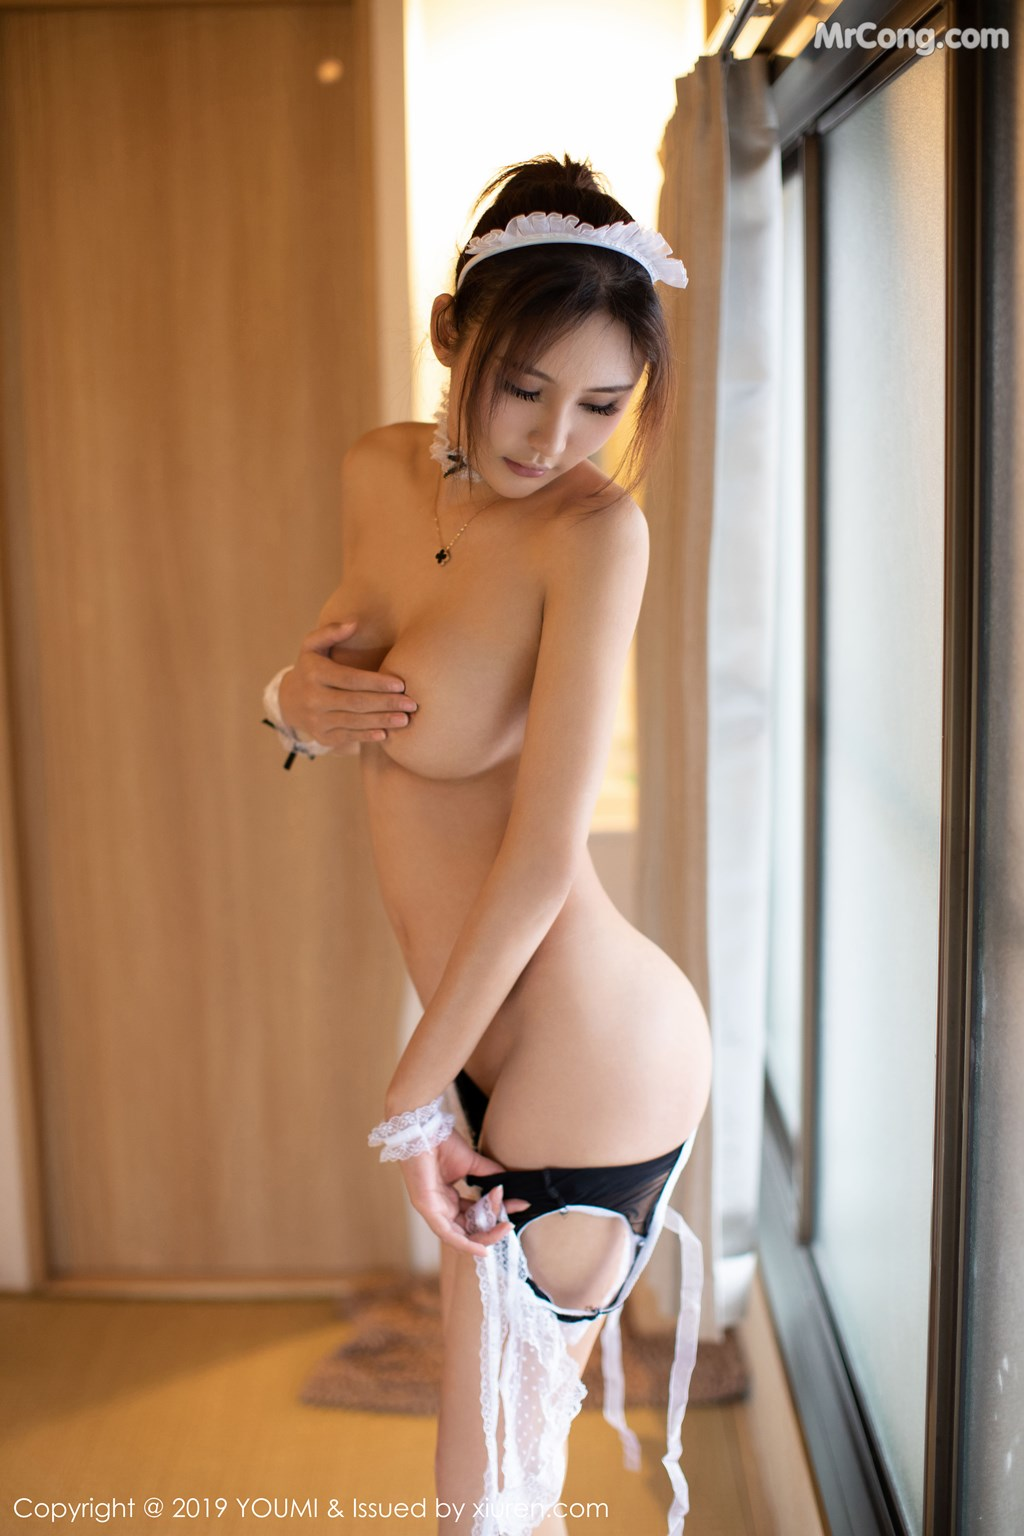 Image YouMi-Vol.299-SOLO-MrCong.com-009 in post YouMi Vol.299: SOLO-尹菲 (41 ảnh)